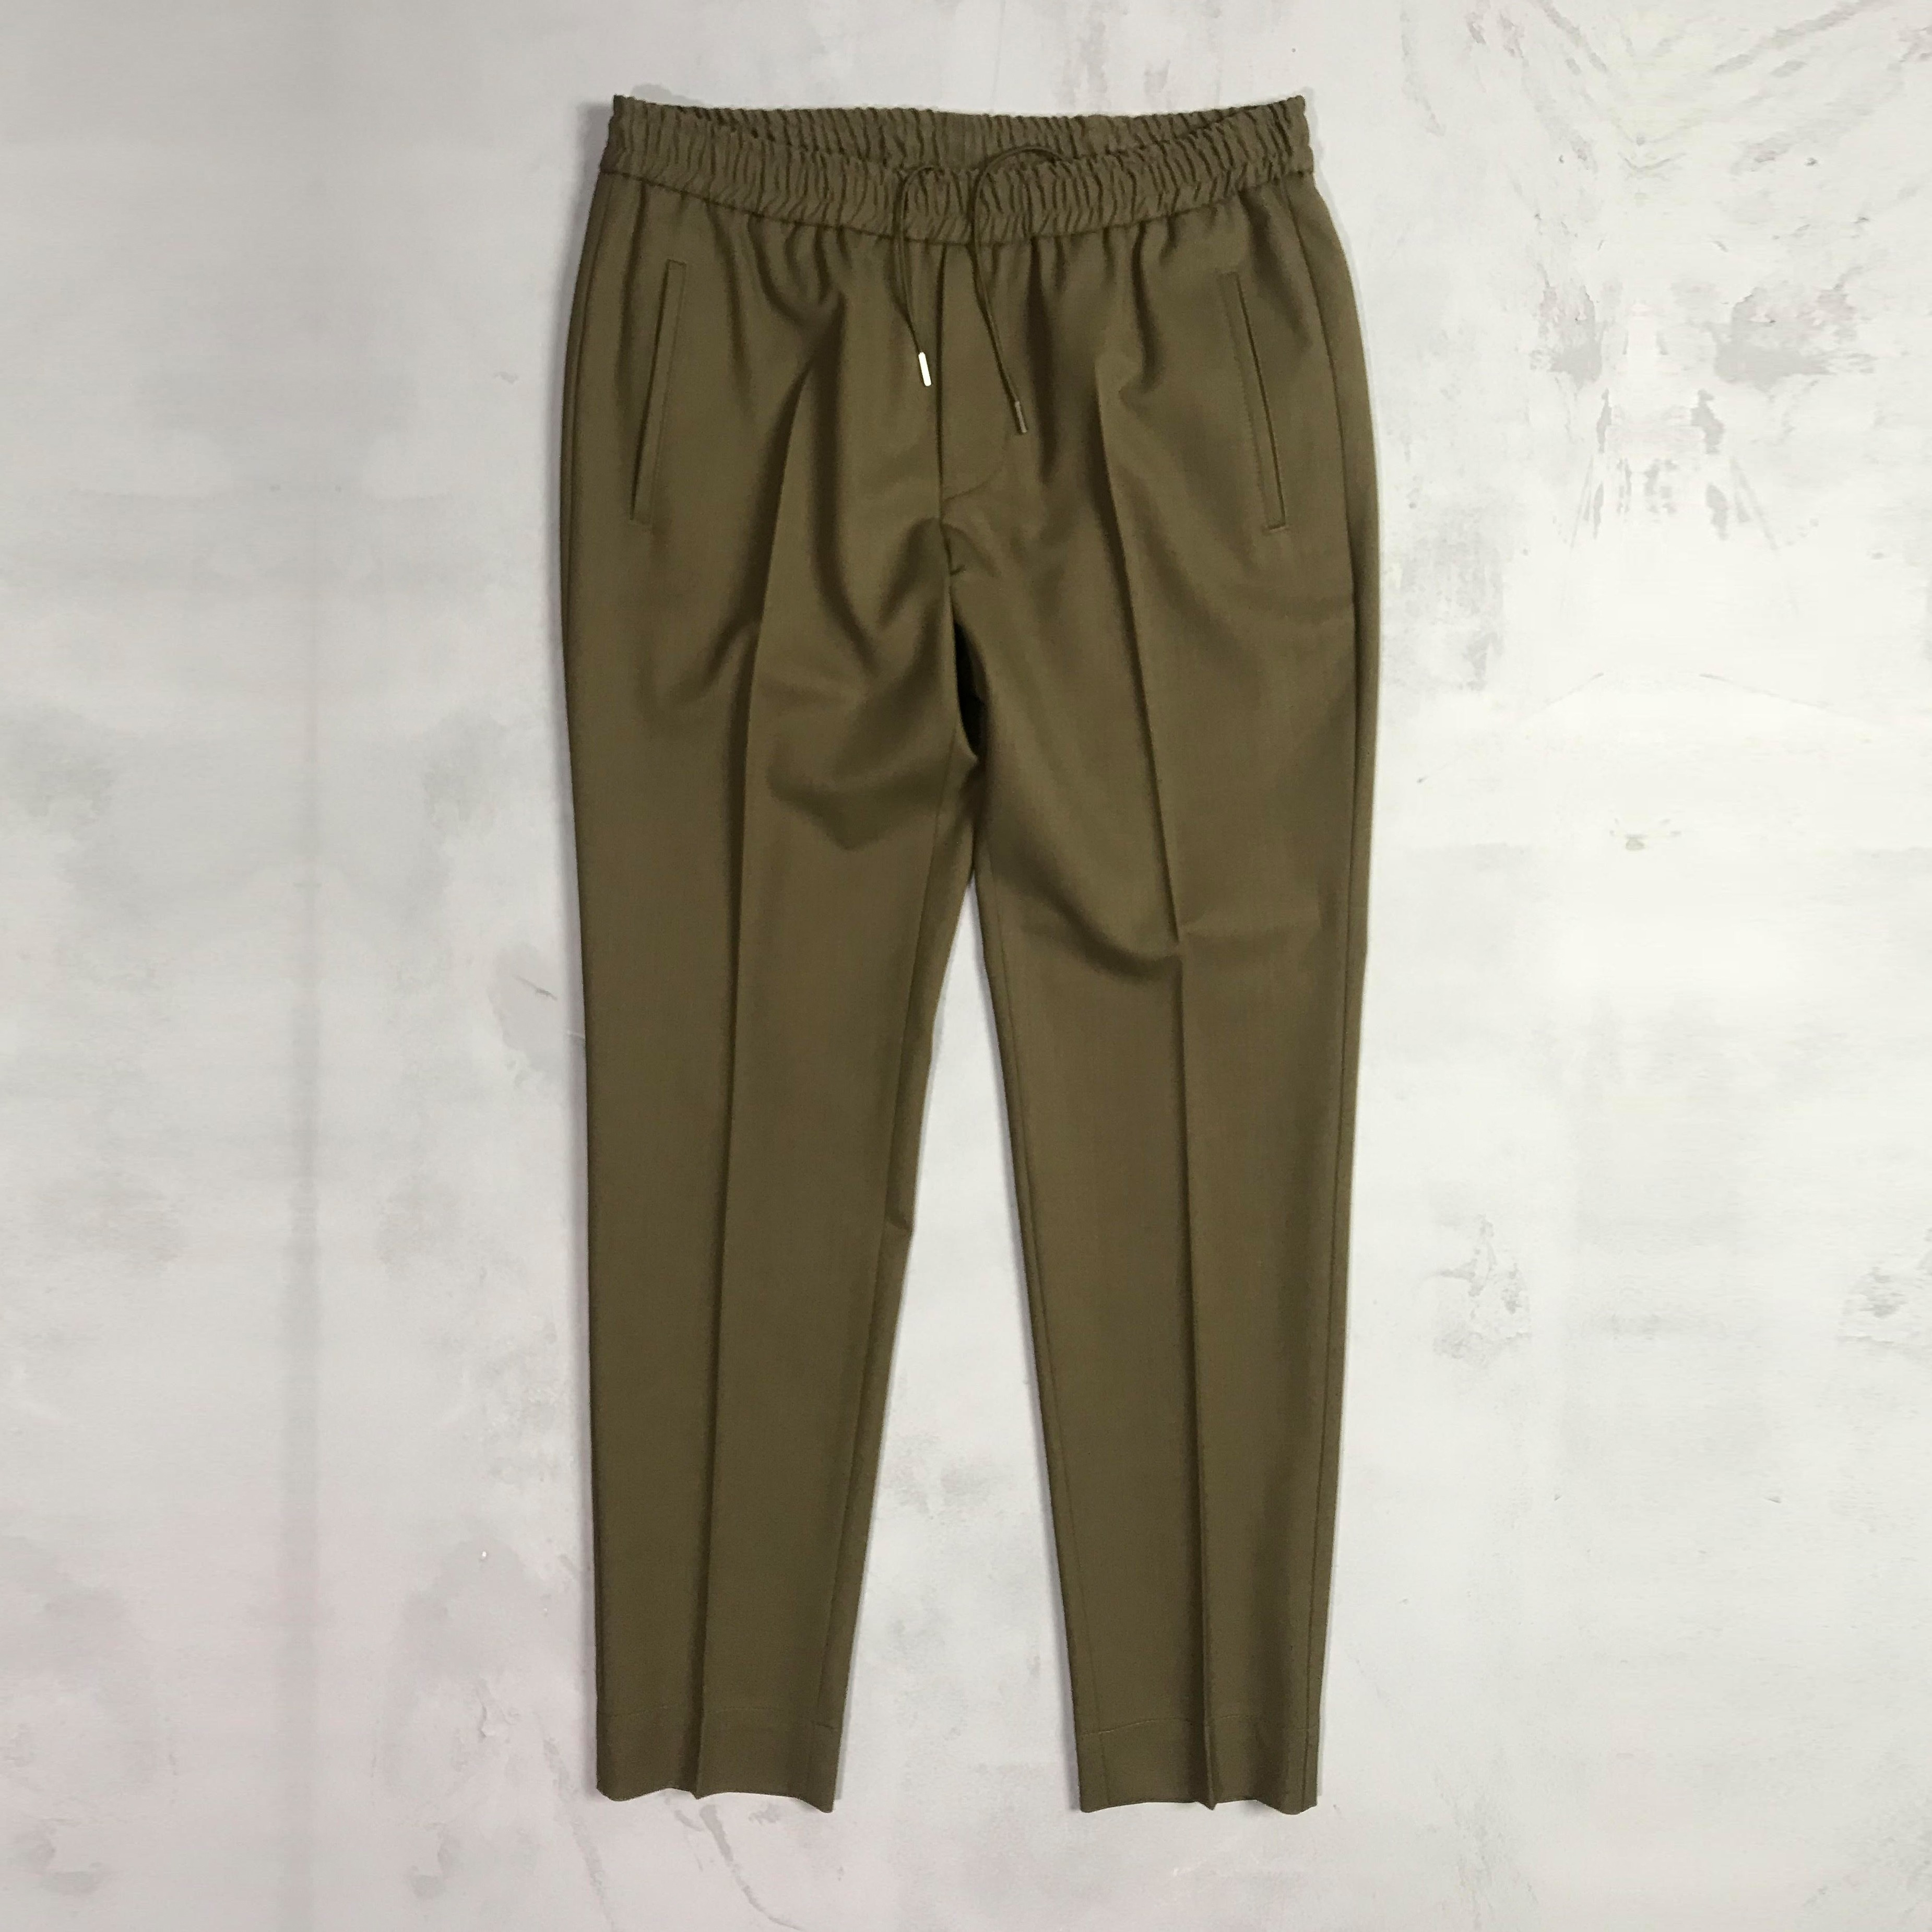 Tailored track trousers grön | Ljung | Brothers.se